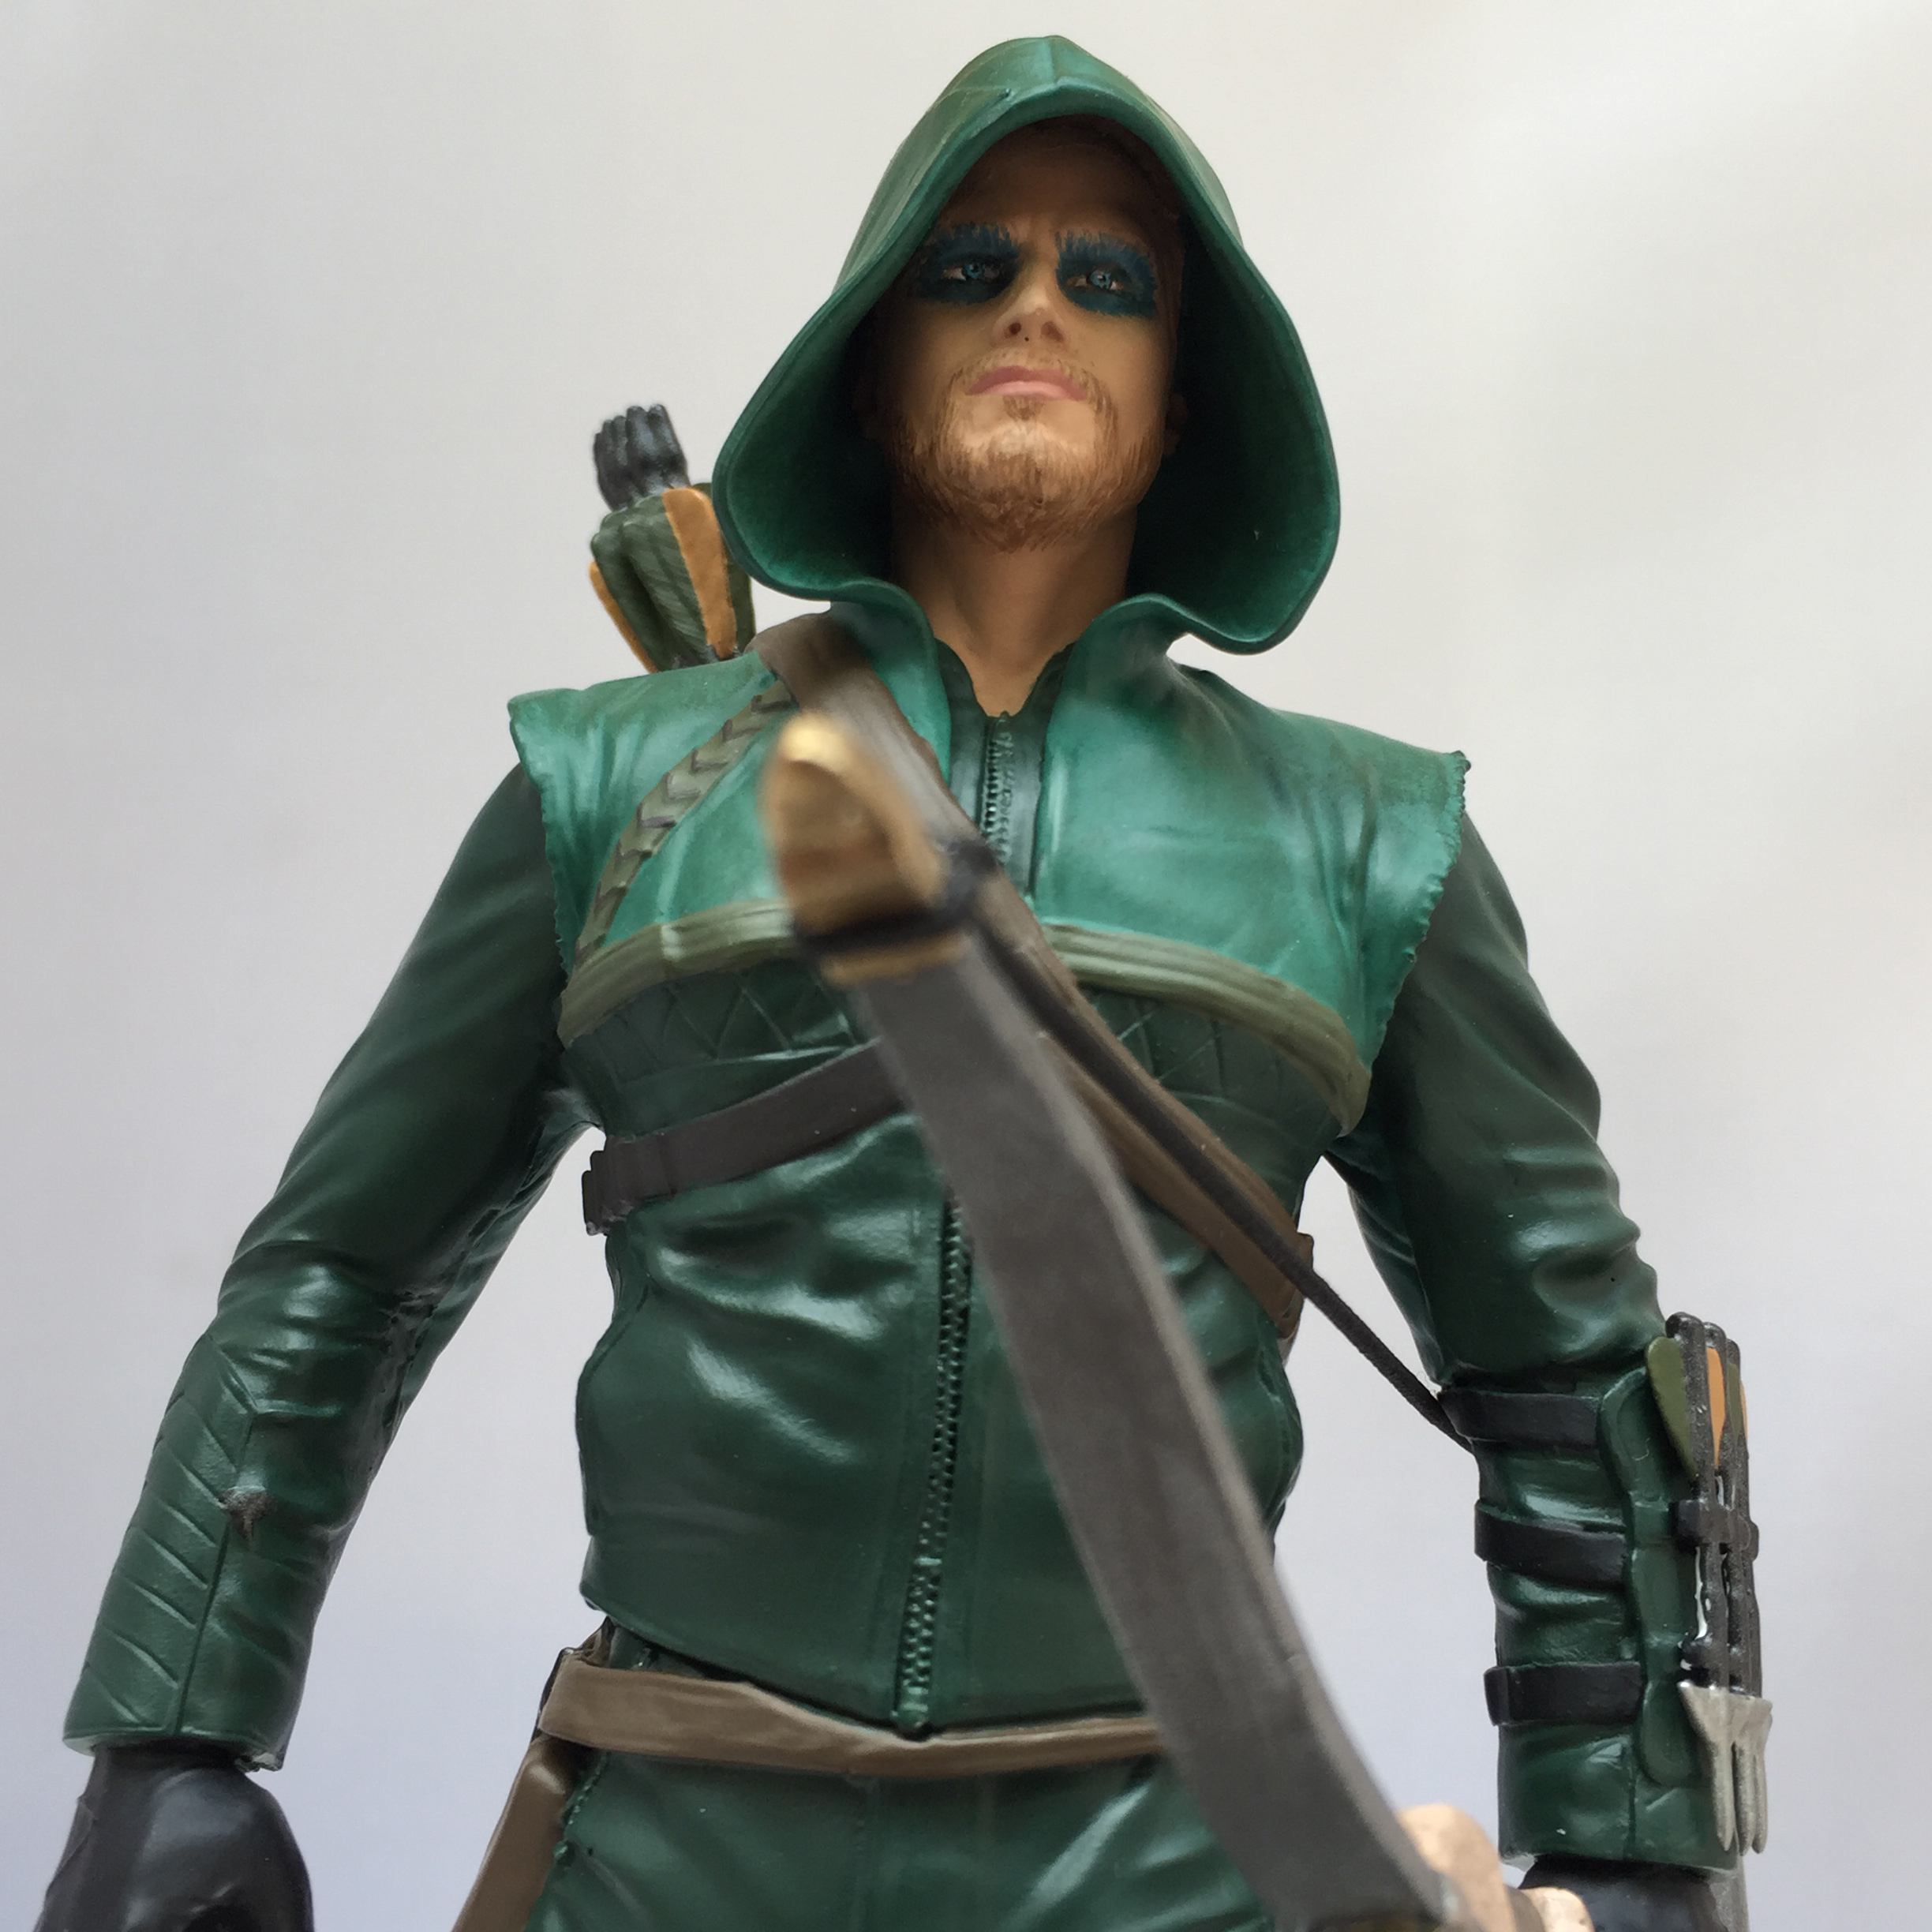 ARROW TV SEASON 1 PX STATUE PAPERWEIGHT